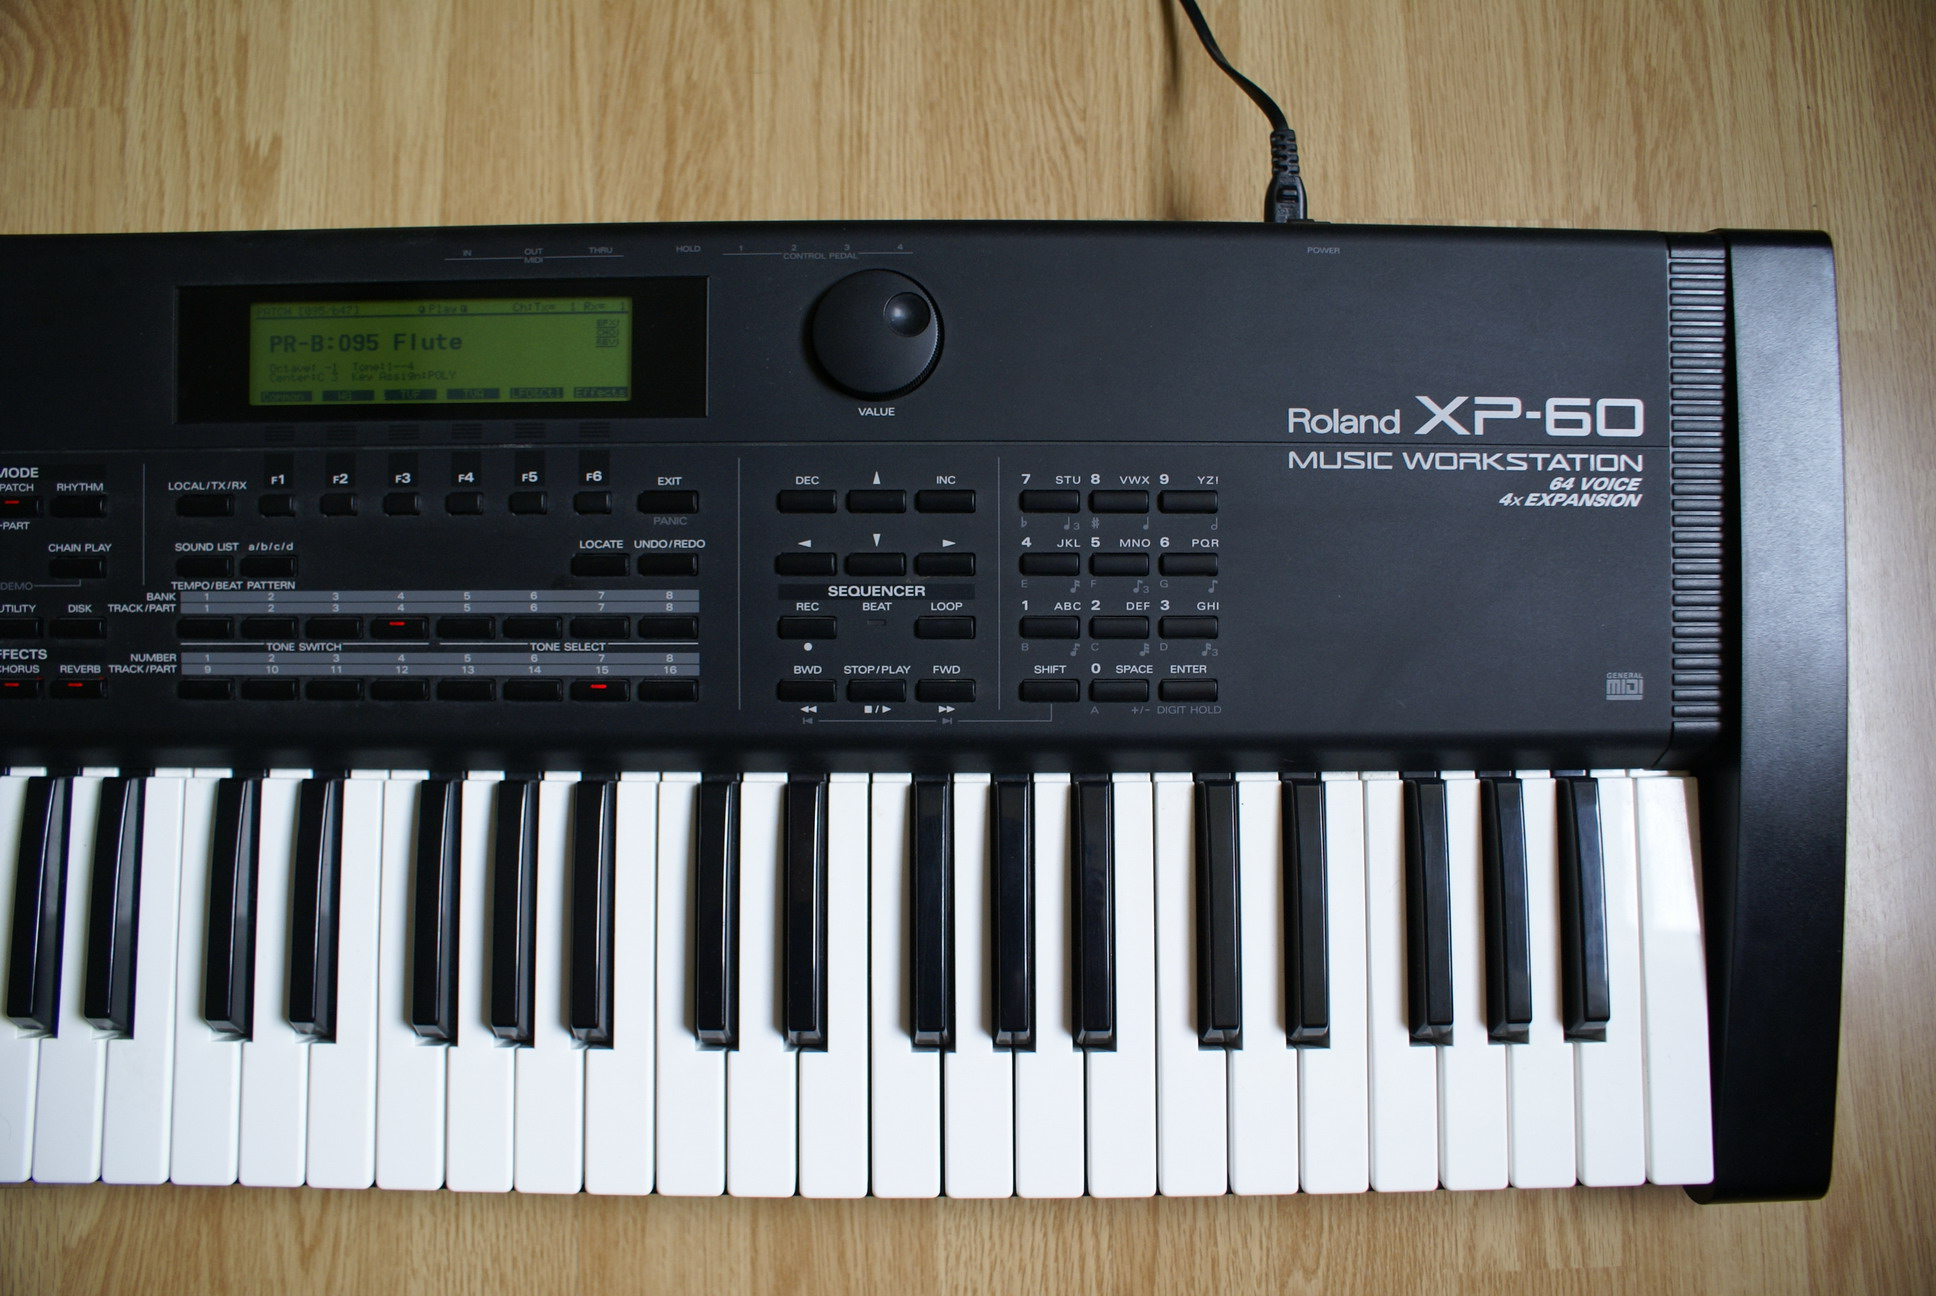 Roland XP-60 Owner s Manual